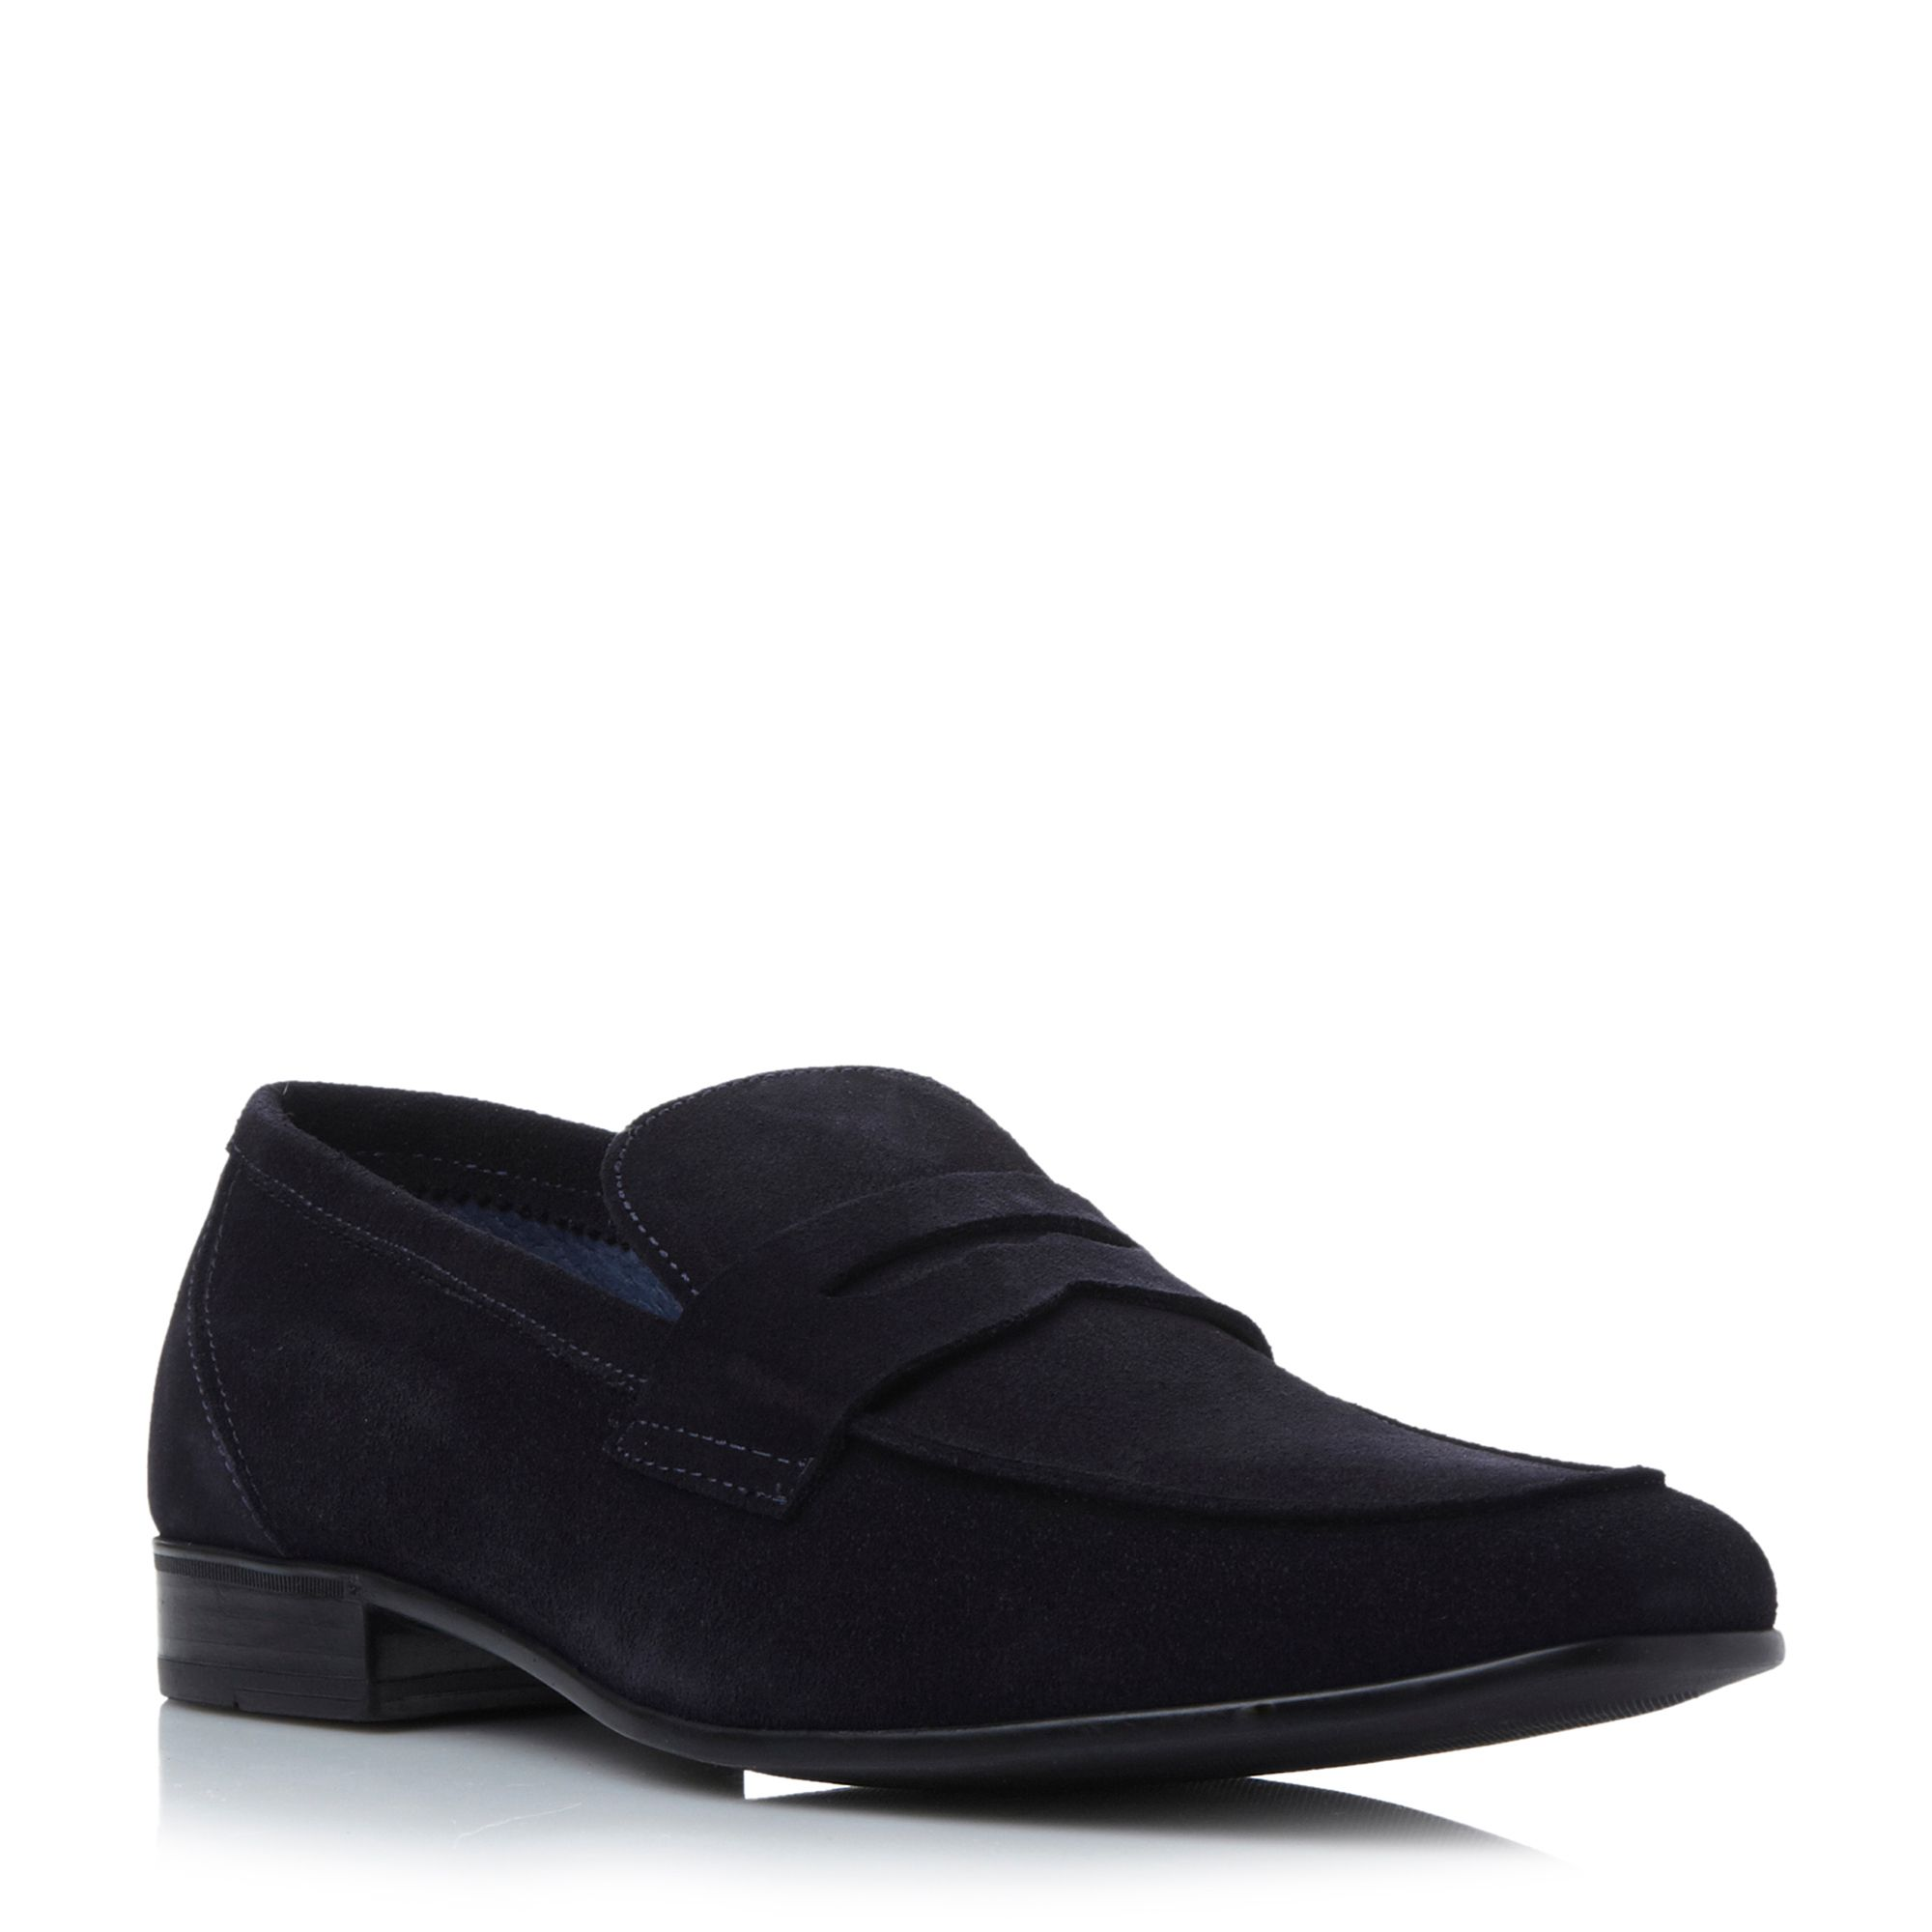 Roland Cartier Roland Cartier Beech Saddle Casual Loafers, Navy